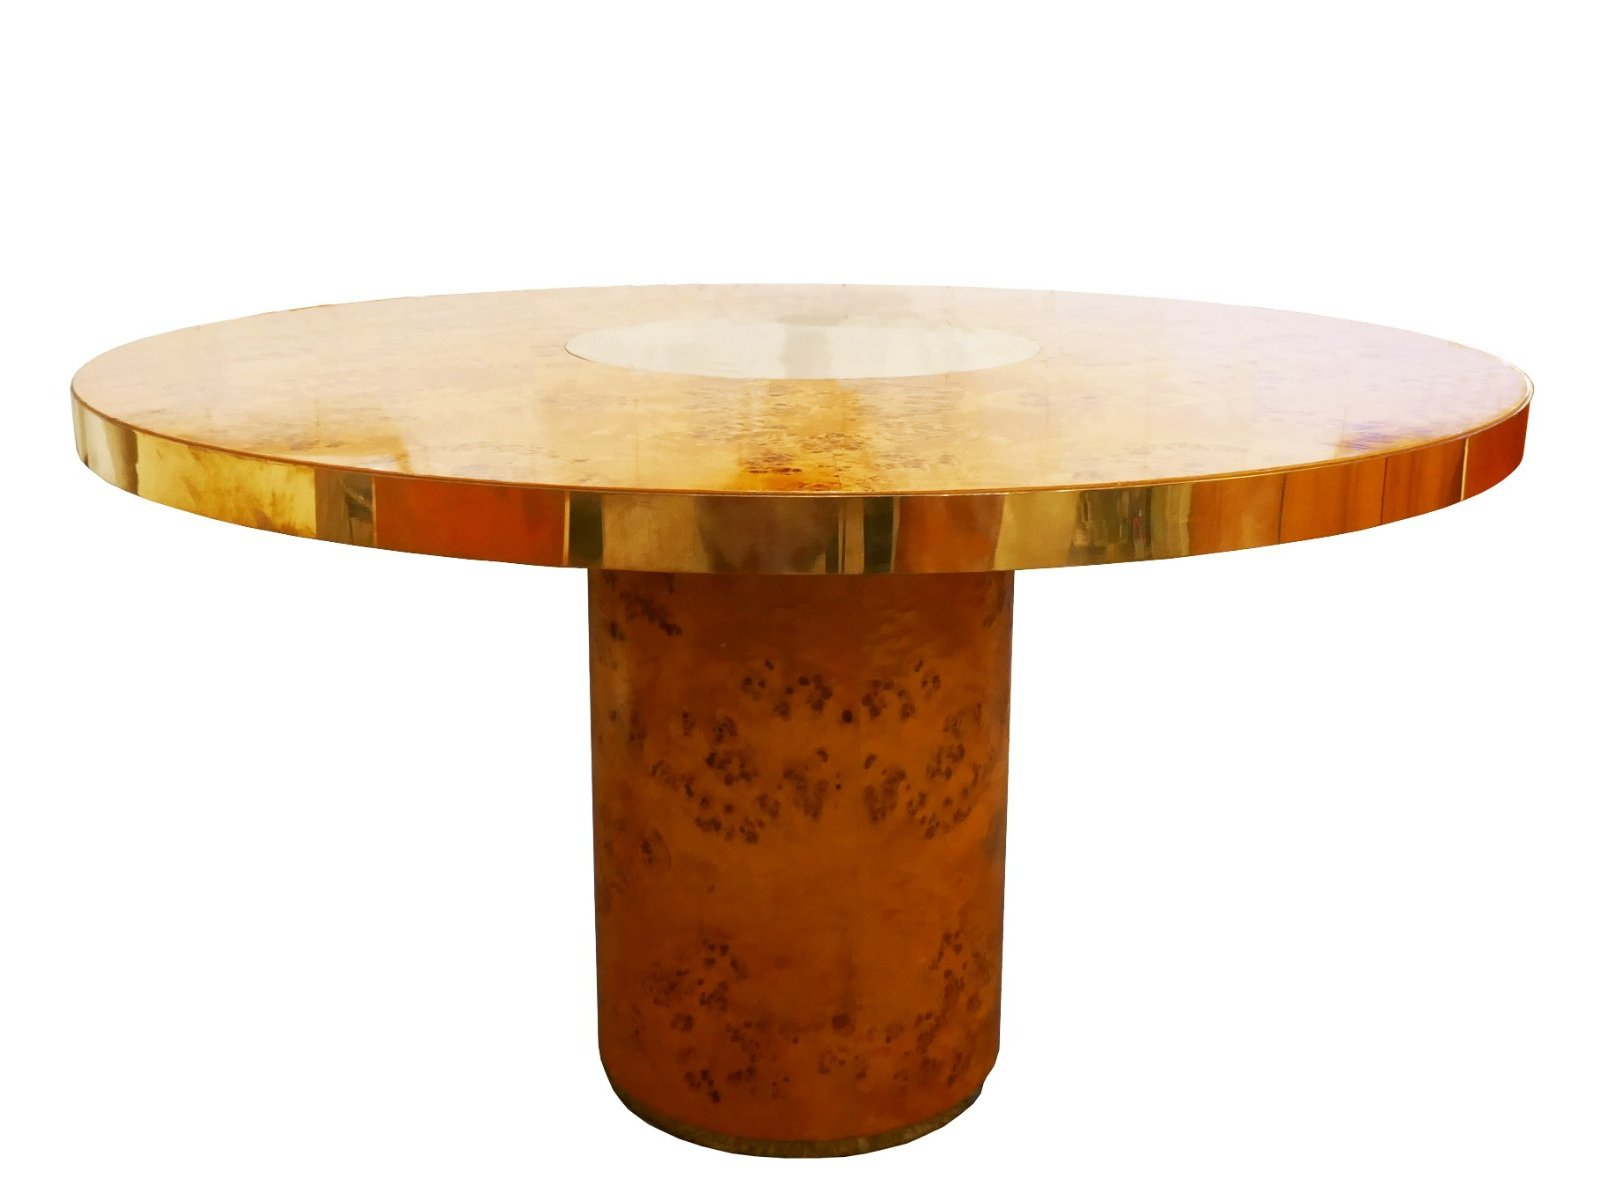 Round Dining Table In Brass & Burl By Willy Rizzo For Mario